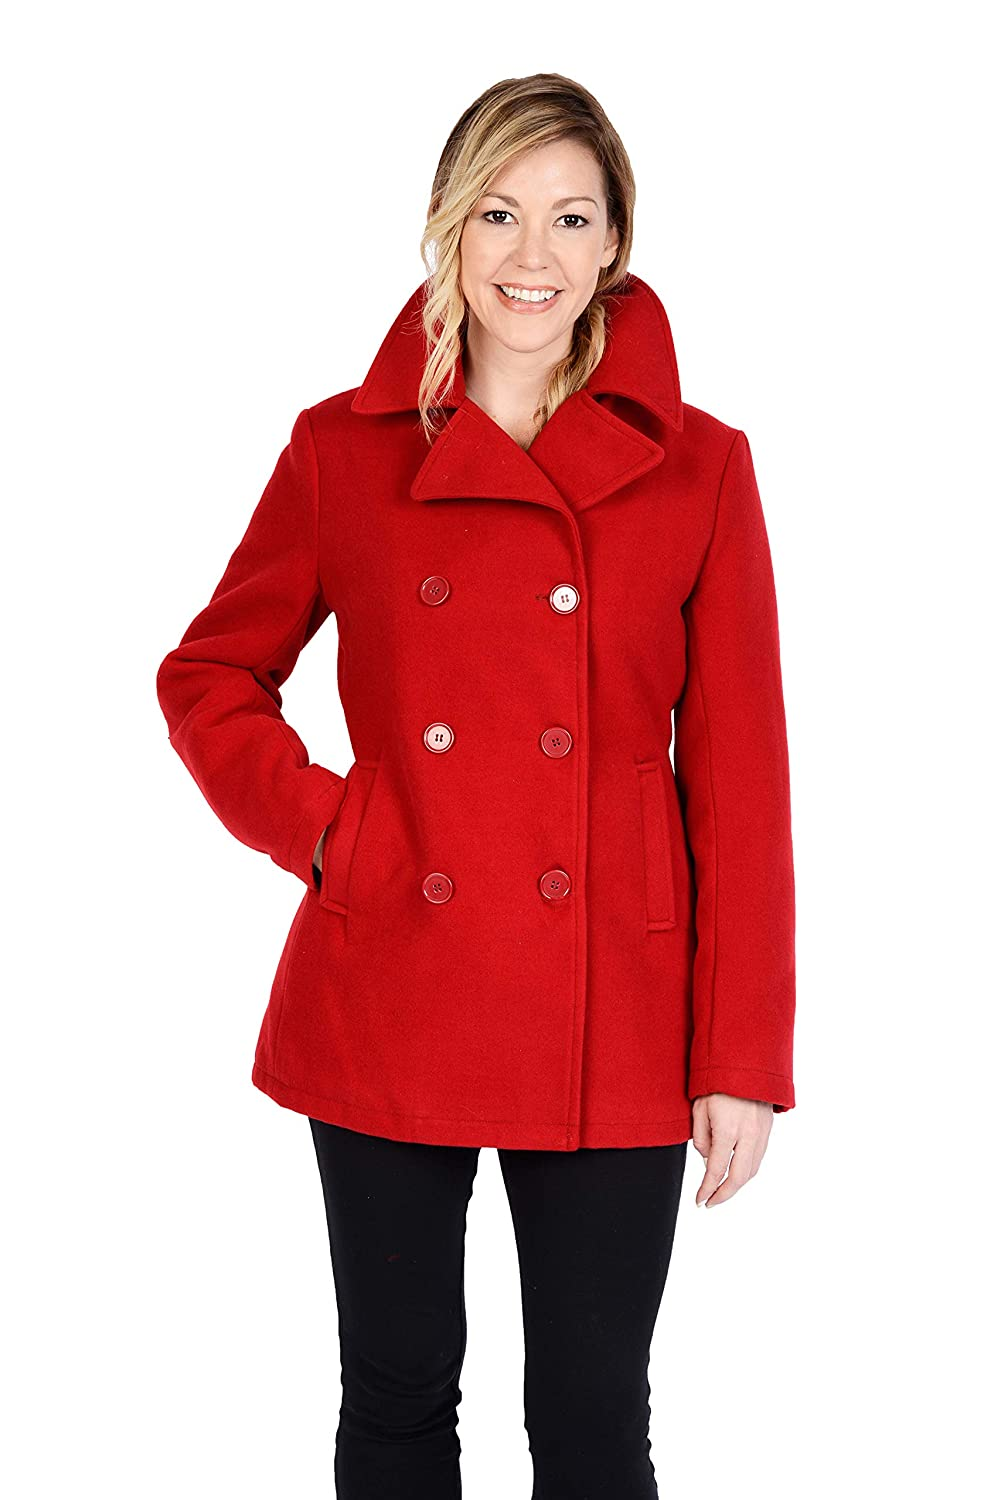 3021fff0628 Excelled Leather Women s Plus Size Classic Pea Coat at Amazon Women s  Clothing store